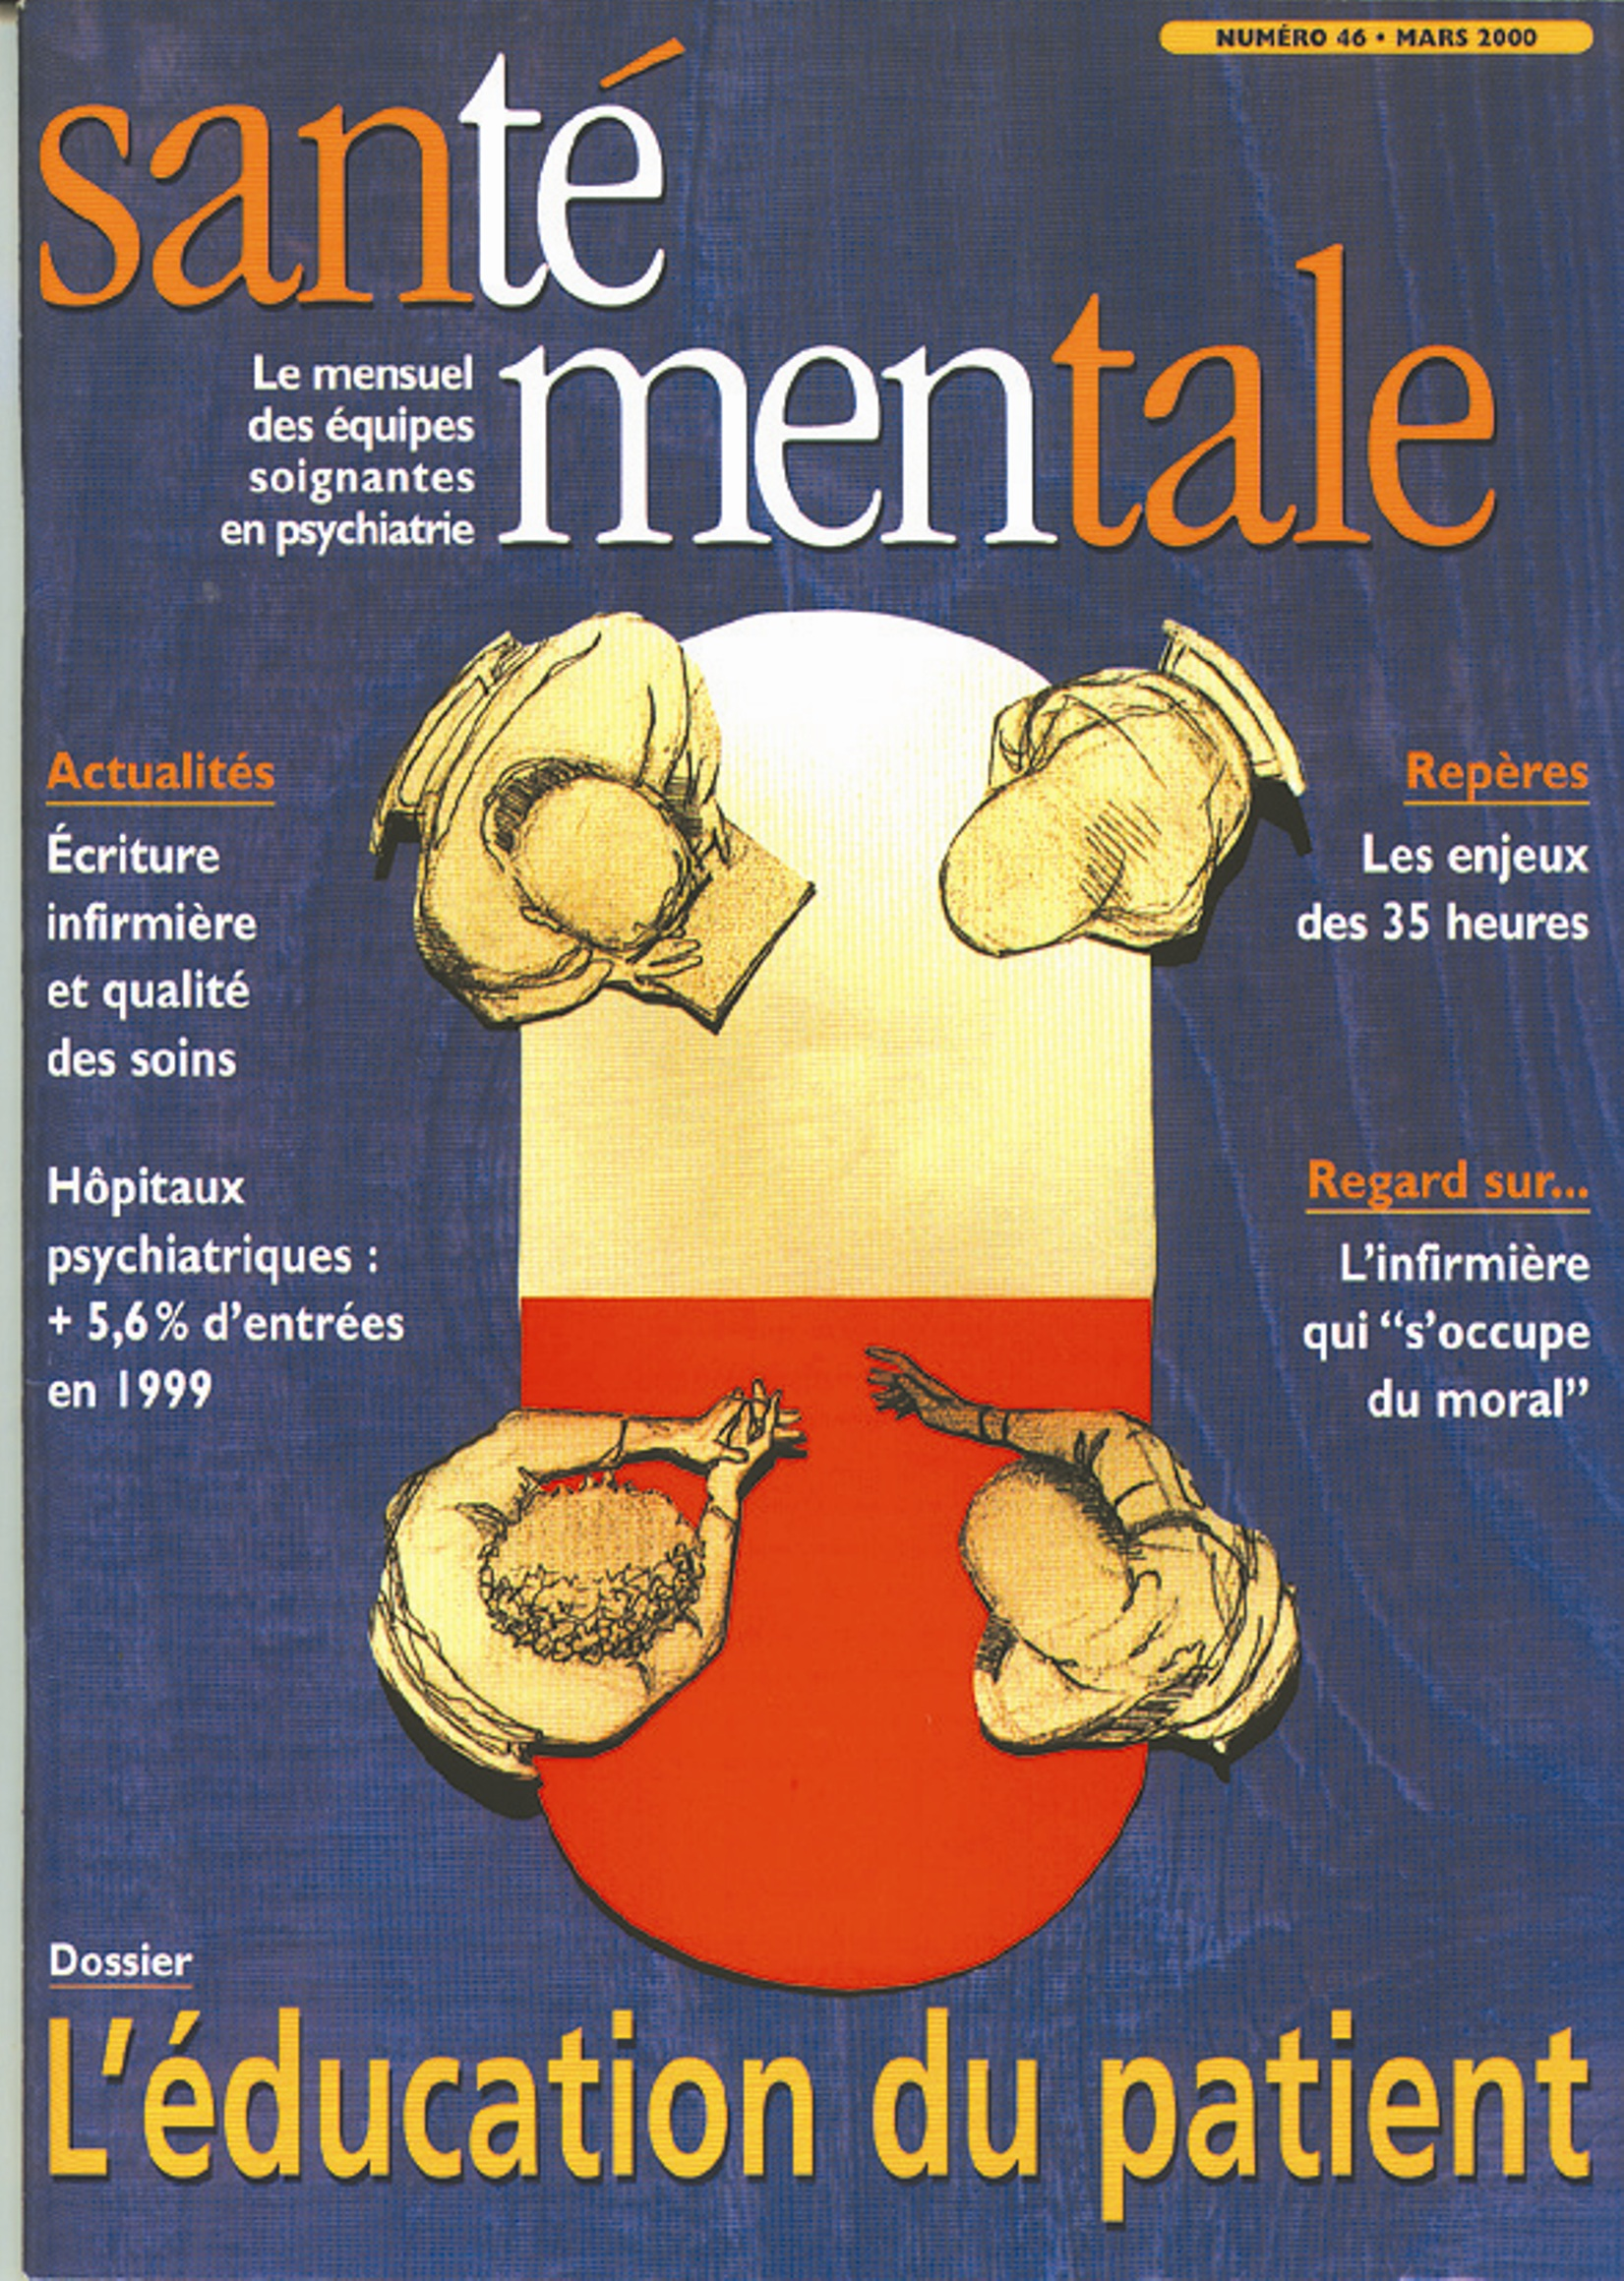 Couverture N°46 mars 2000